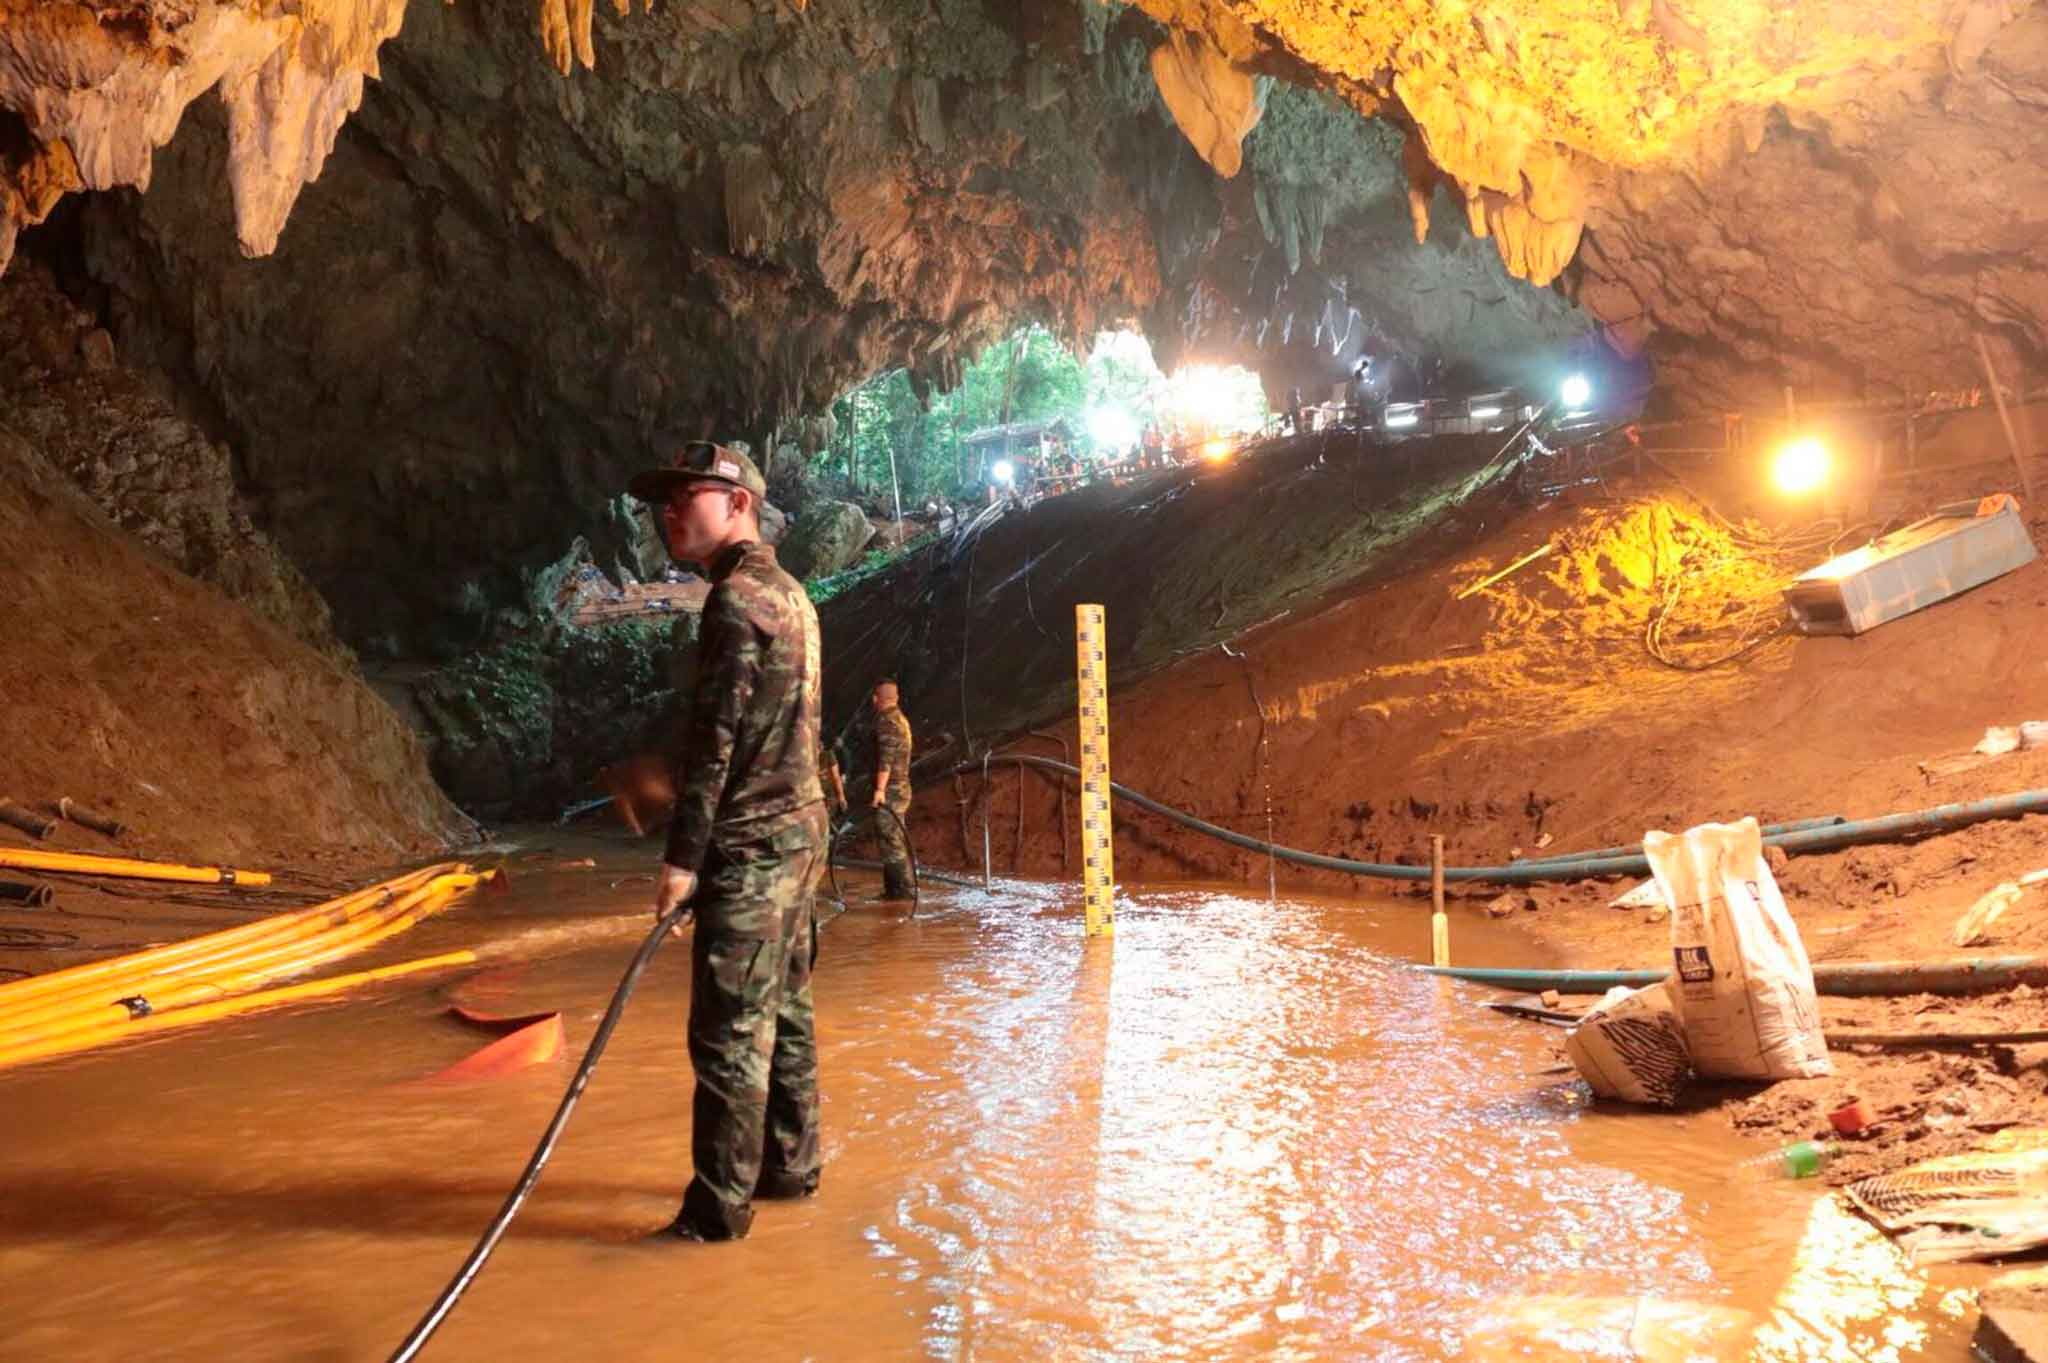 Thai rescue teams arrange water pumping system at the entrance to a flooded cave complex. (Royal Thai Navy via AP)